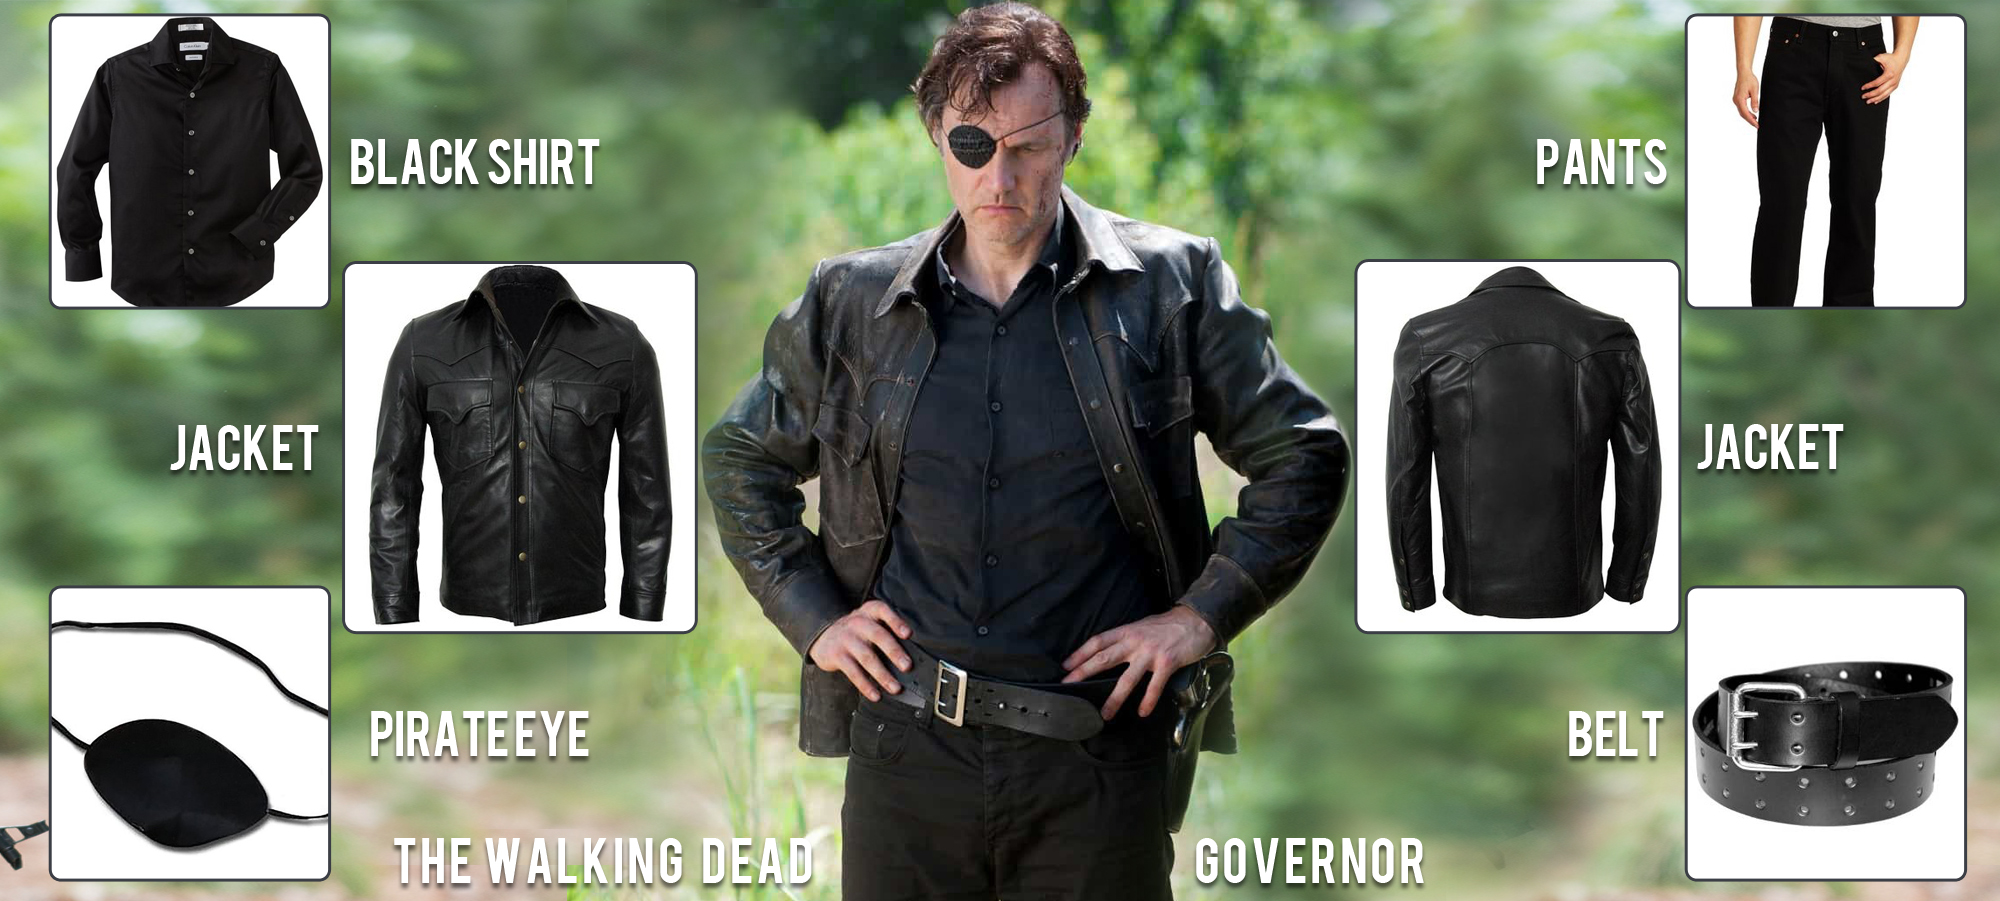 David Morrissey Governor Costume